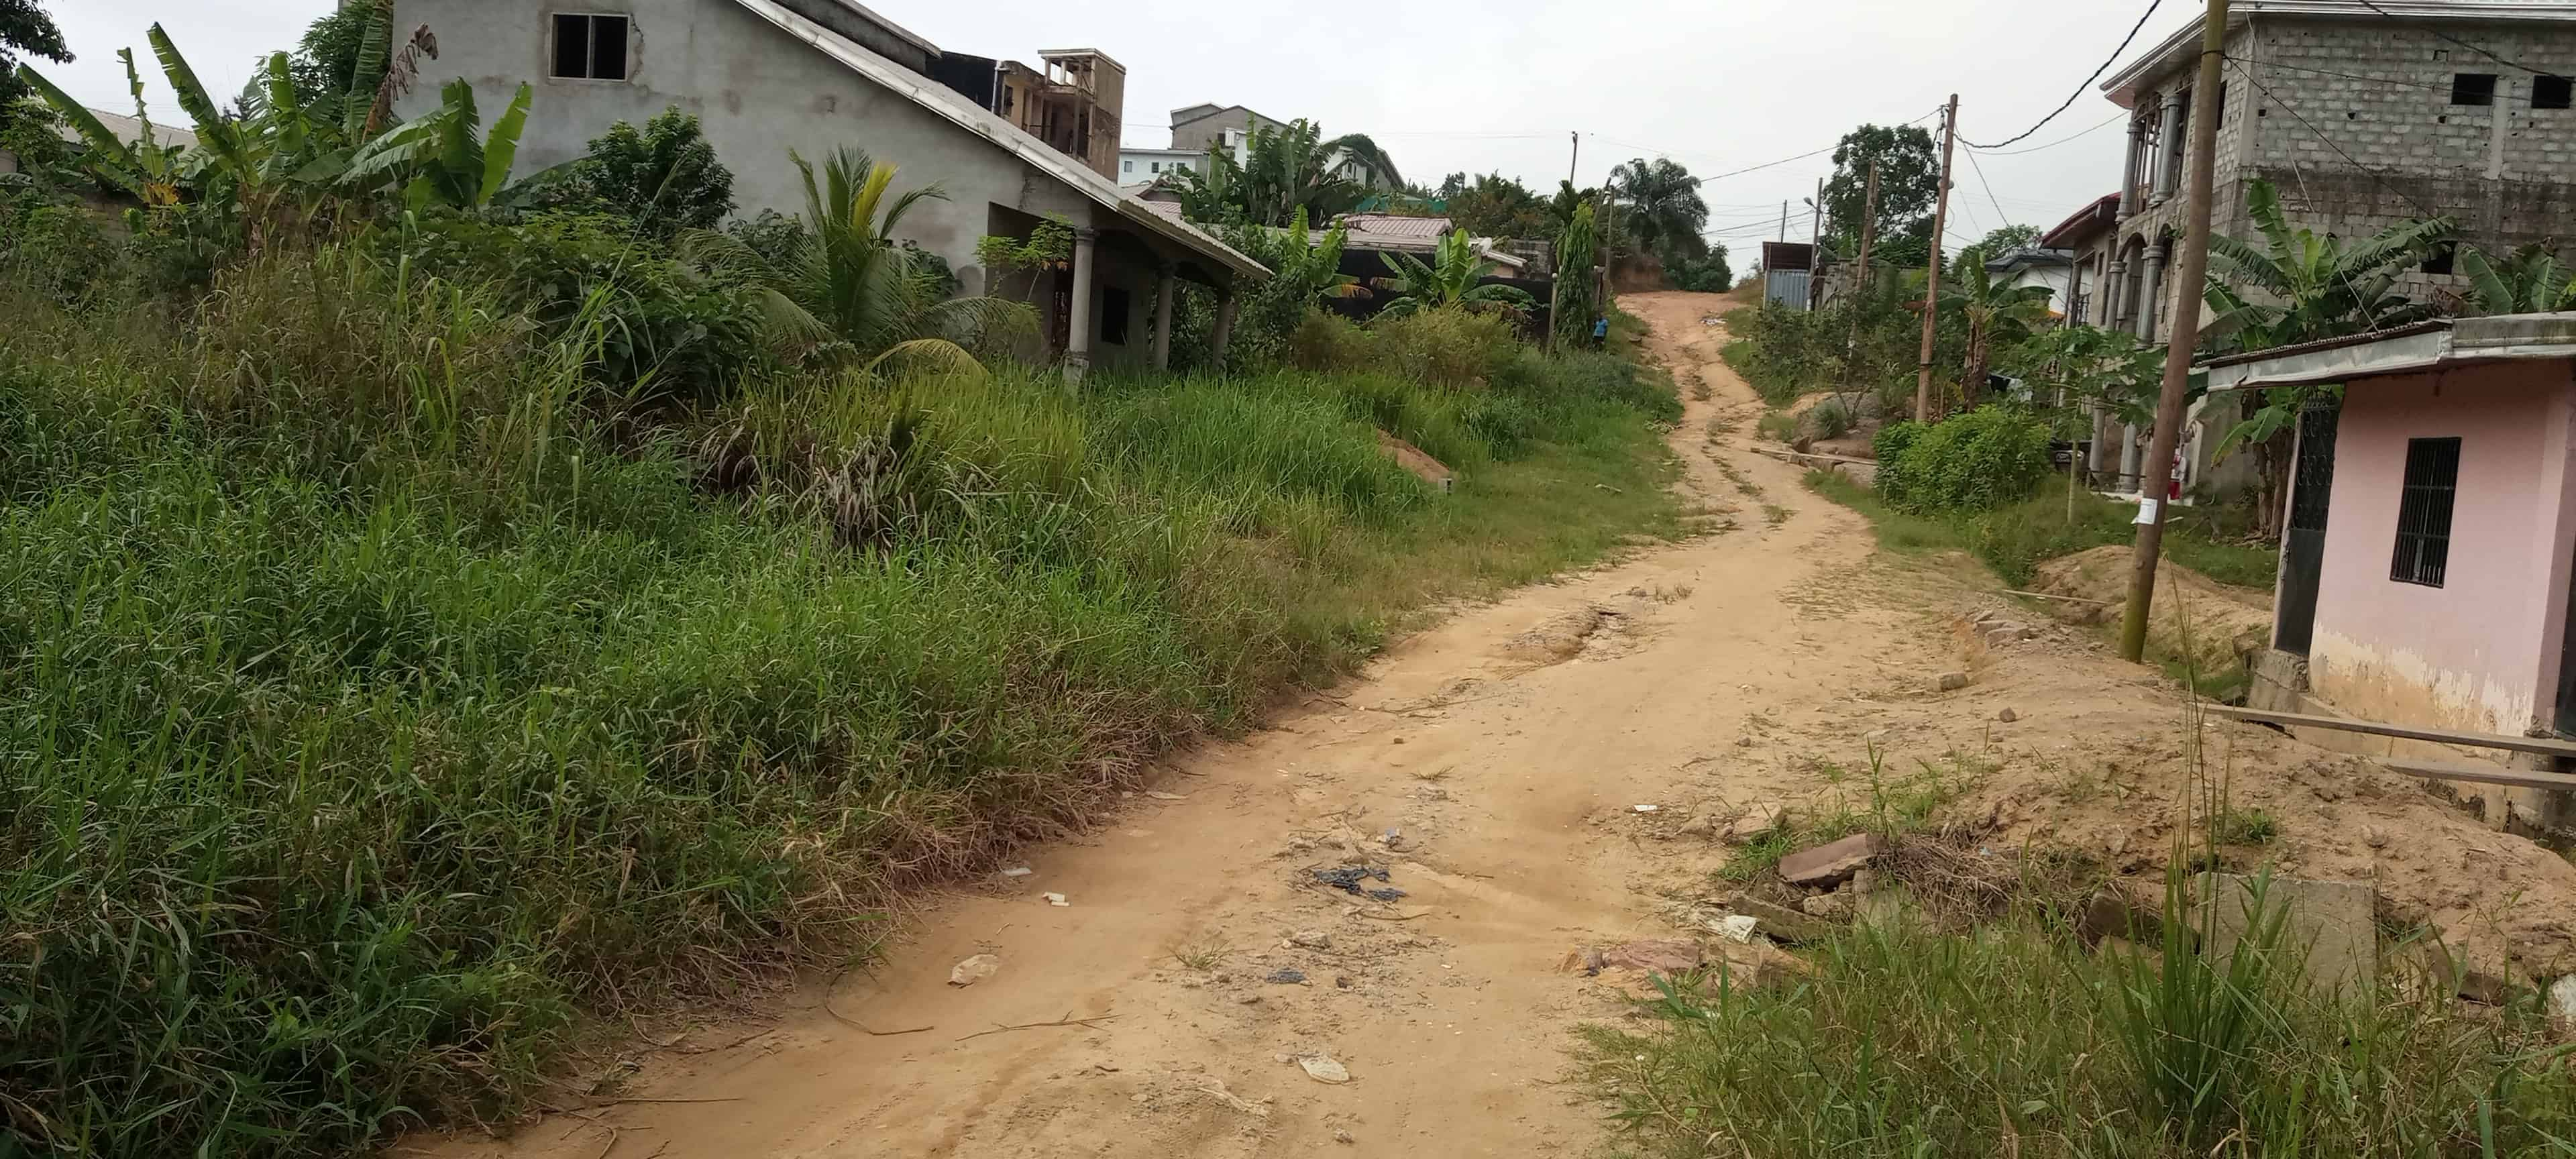 Land for sale at Douala, Japoma, Après les rails - 2000 m2 - 50 000 000 FCFA